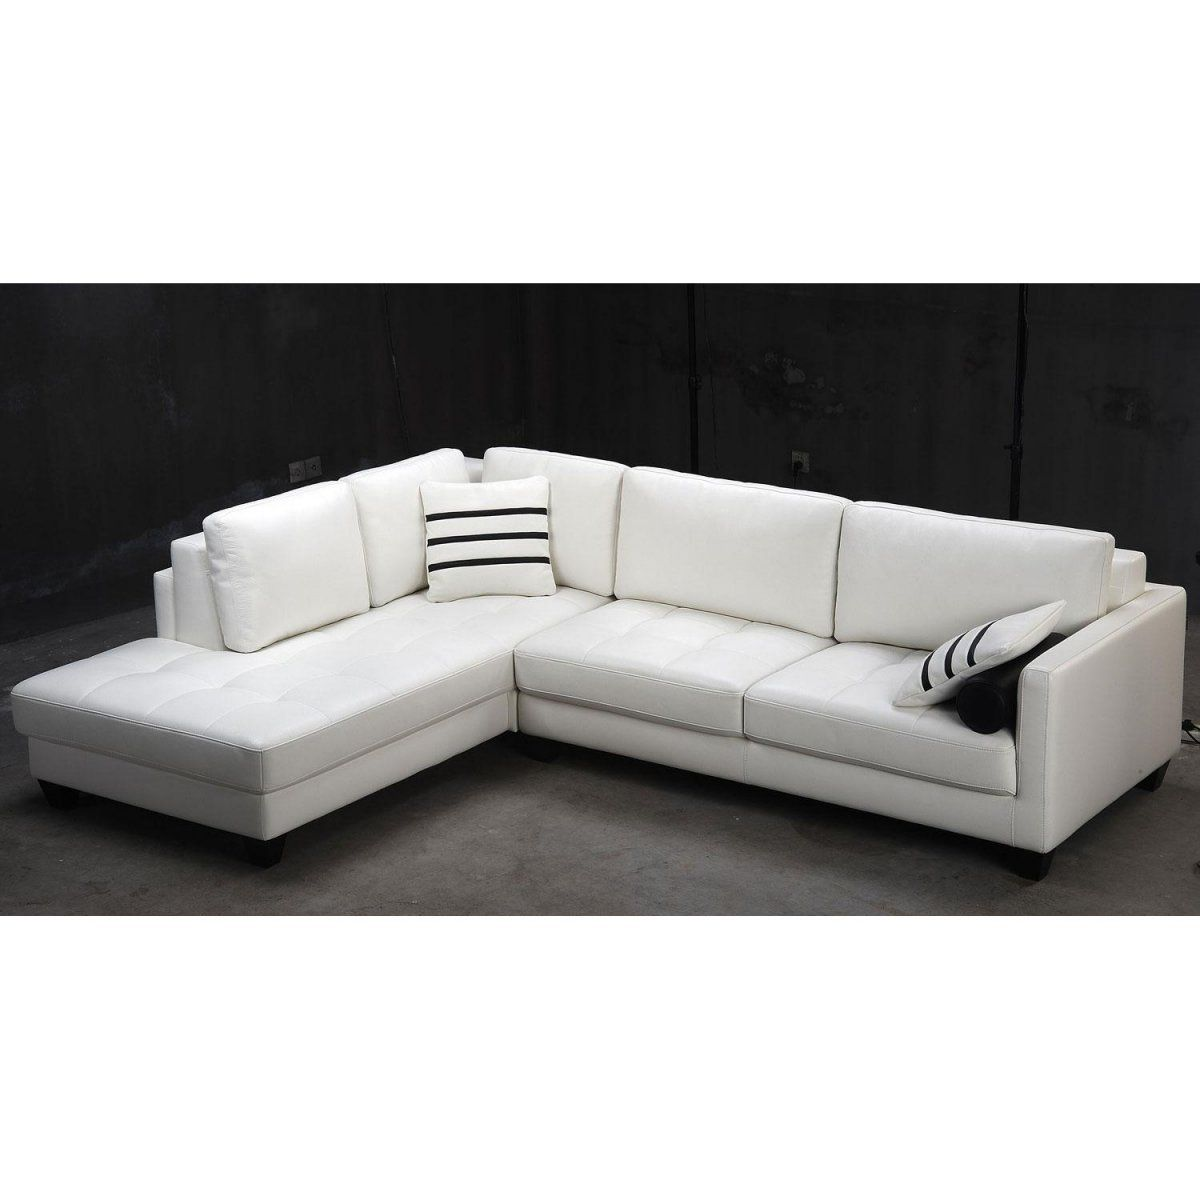 Charmant Tosh Furniture Modern White Leather Sectional Sofa